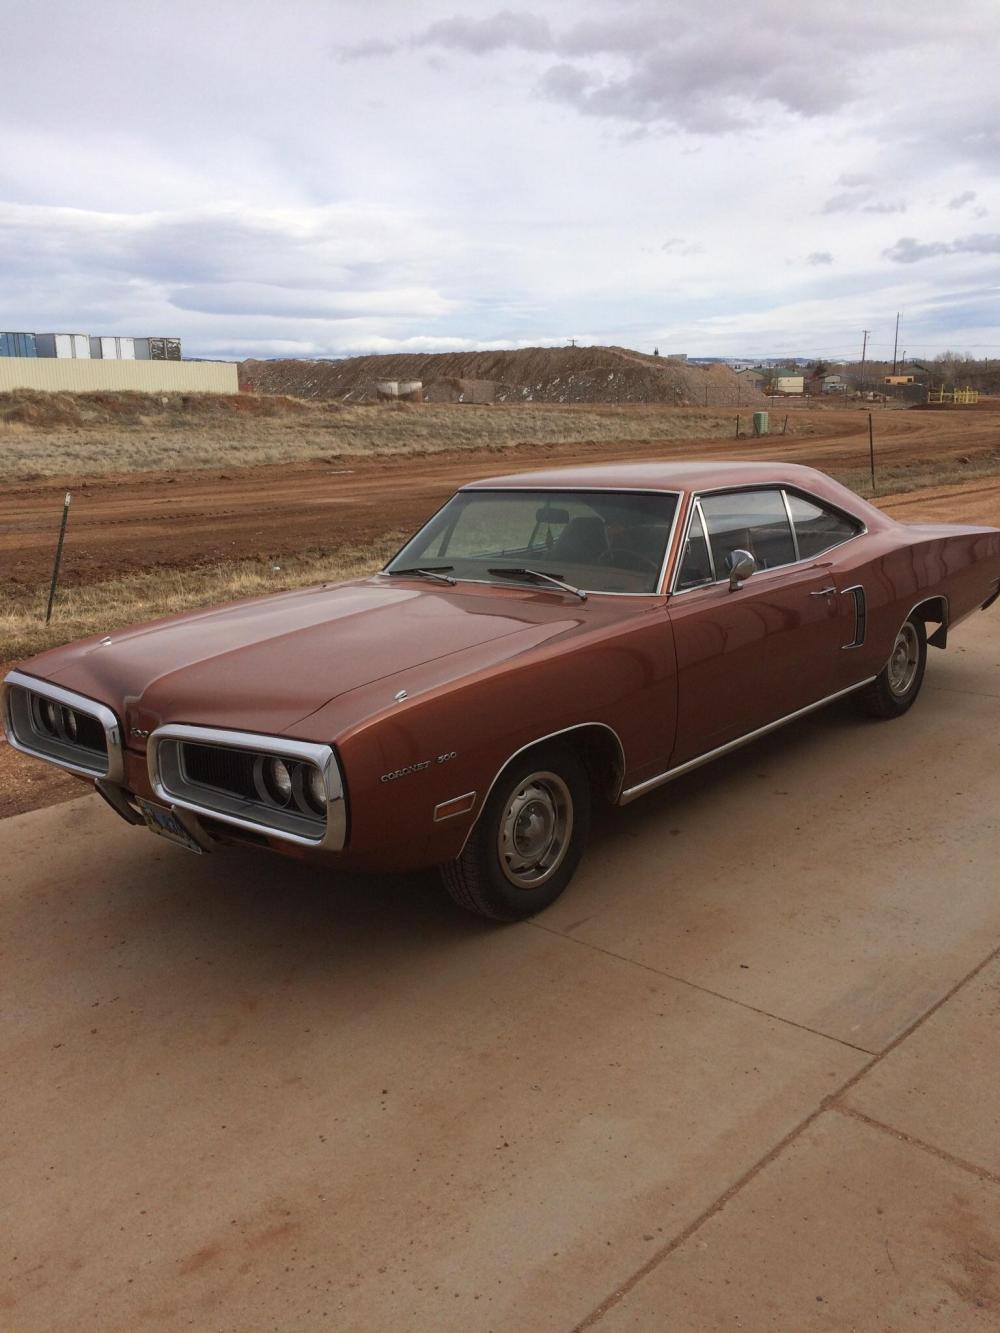 medium resolution of got her out of storage to stretch her legs 70 coronet 500 384 magnum